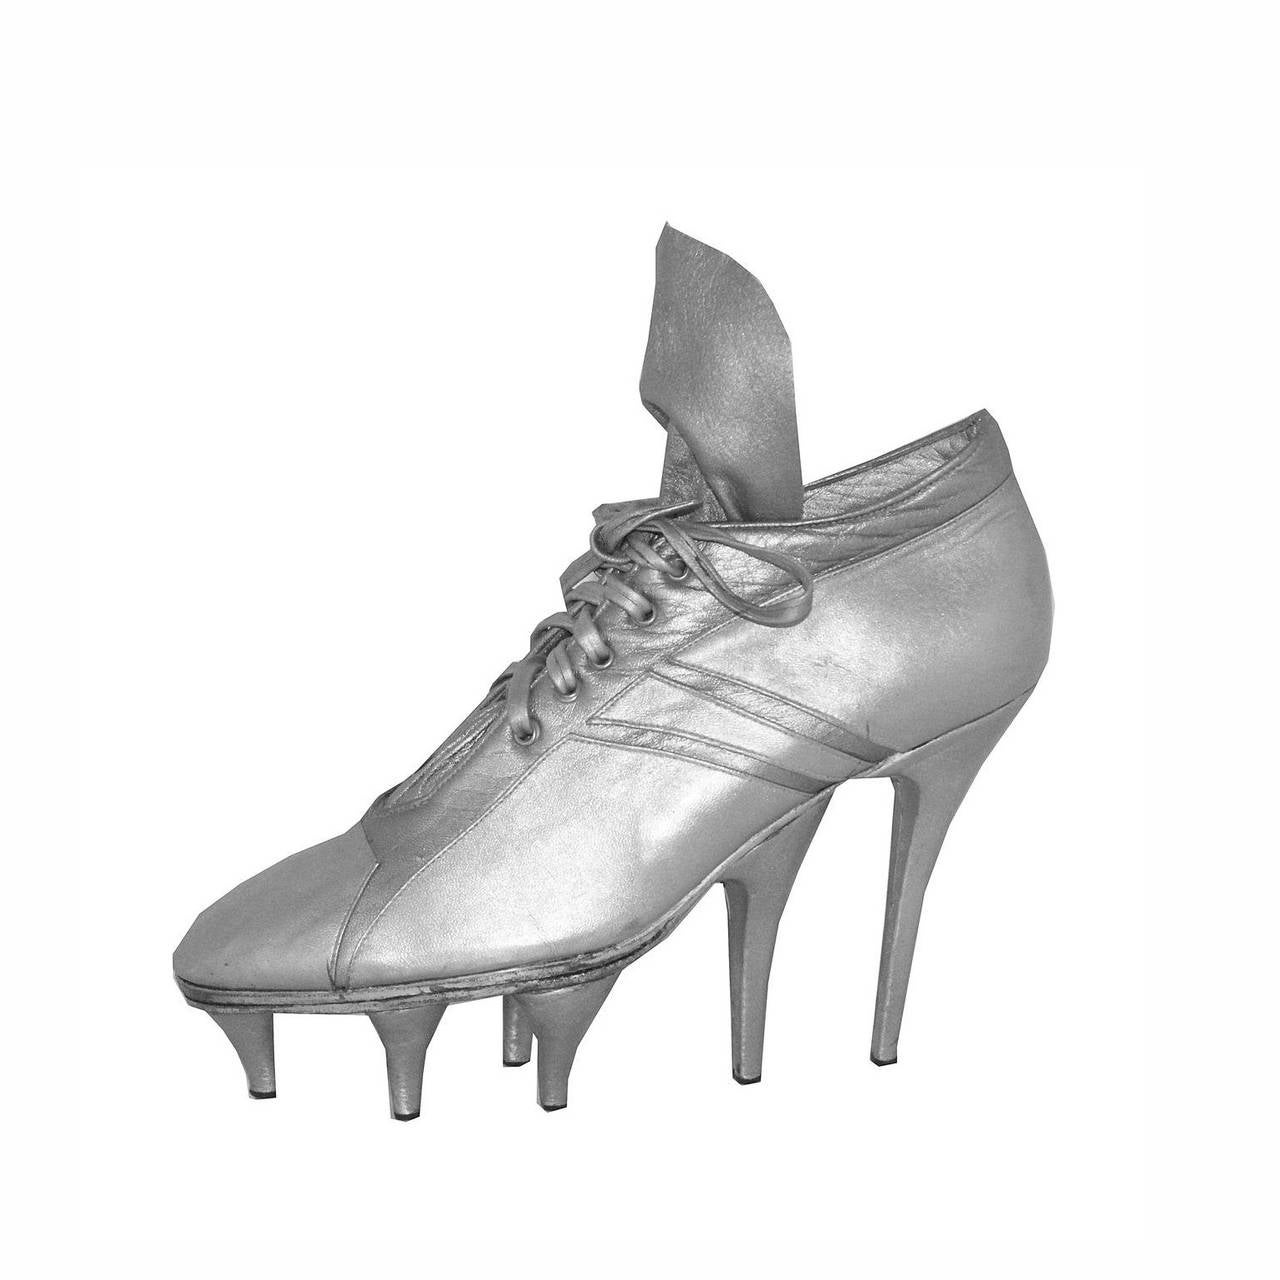 One of a Kind Jean Paul Gaultier x Massaro runway football boots c.1993 1